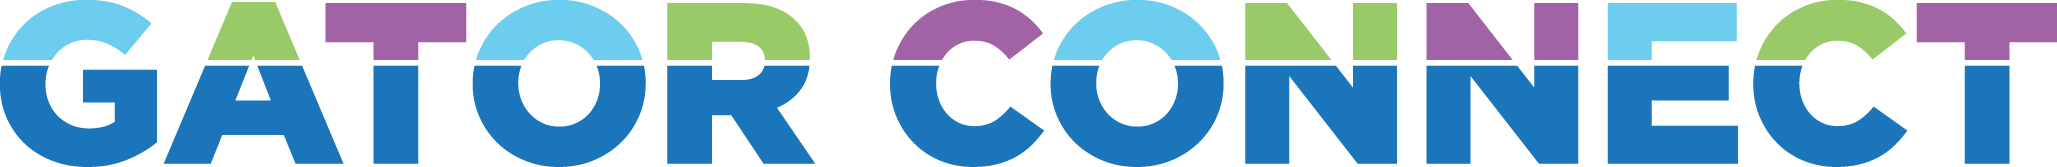 Gator Connect logo